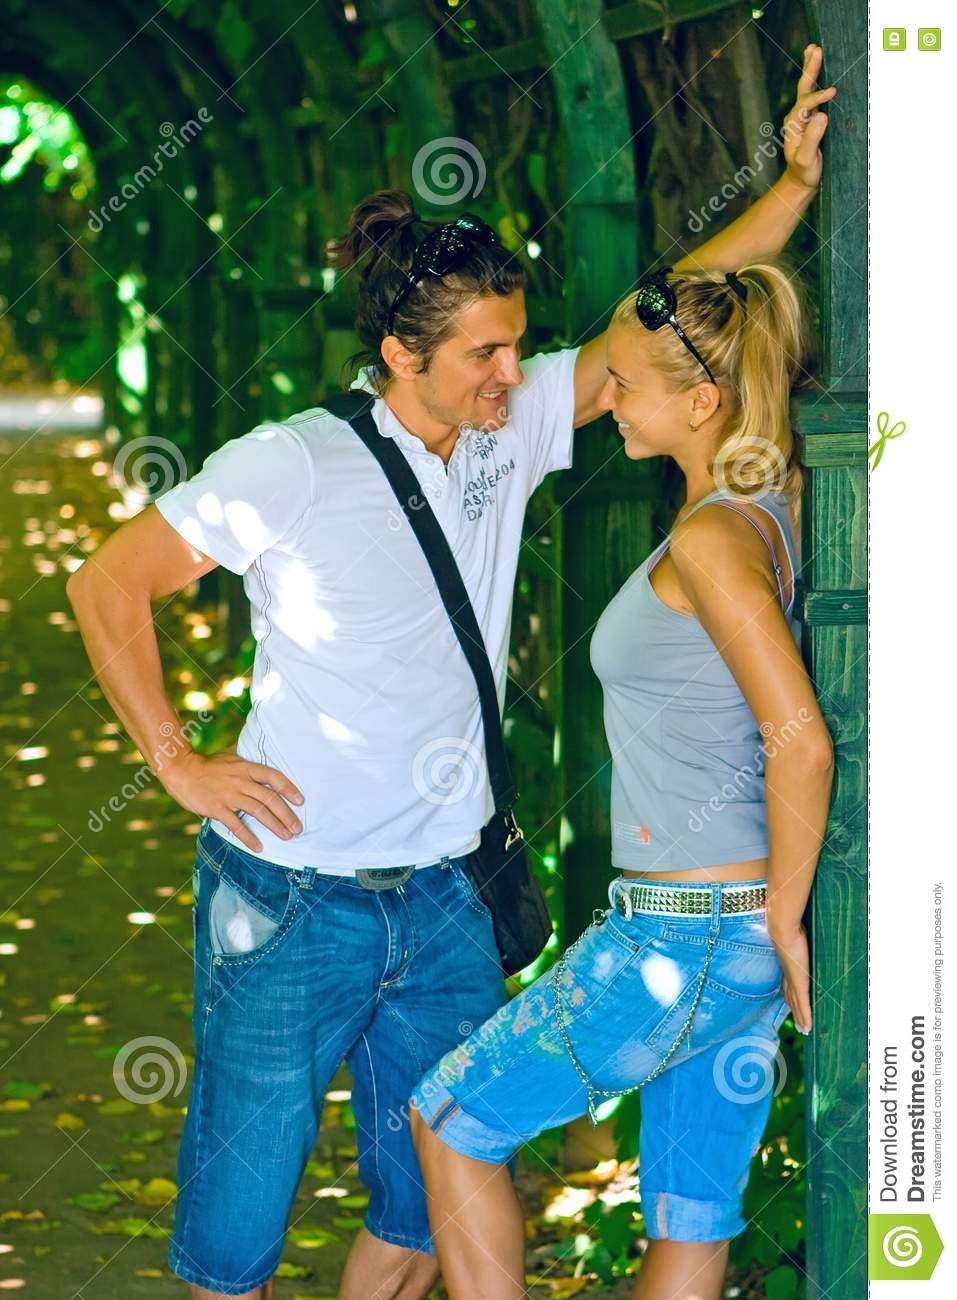 Two lovers royalty free stock photo image 10001025 for 2 lovers pic